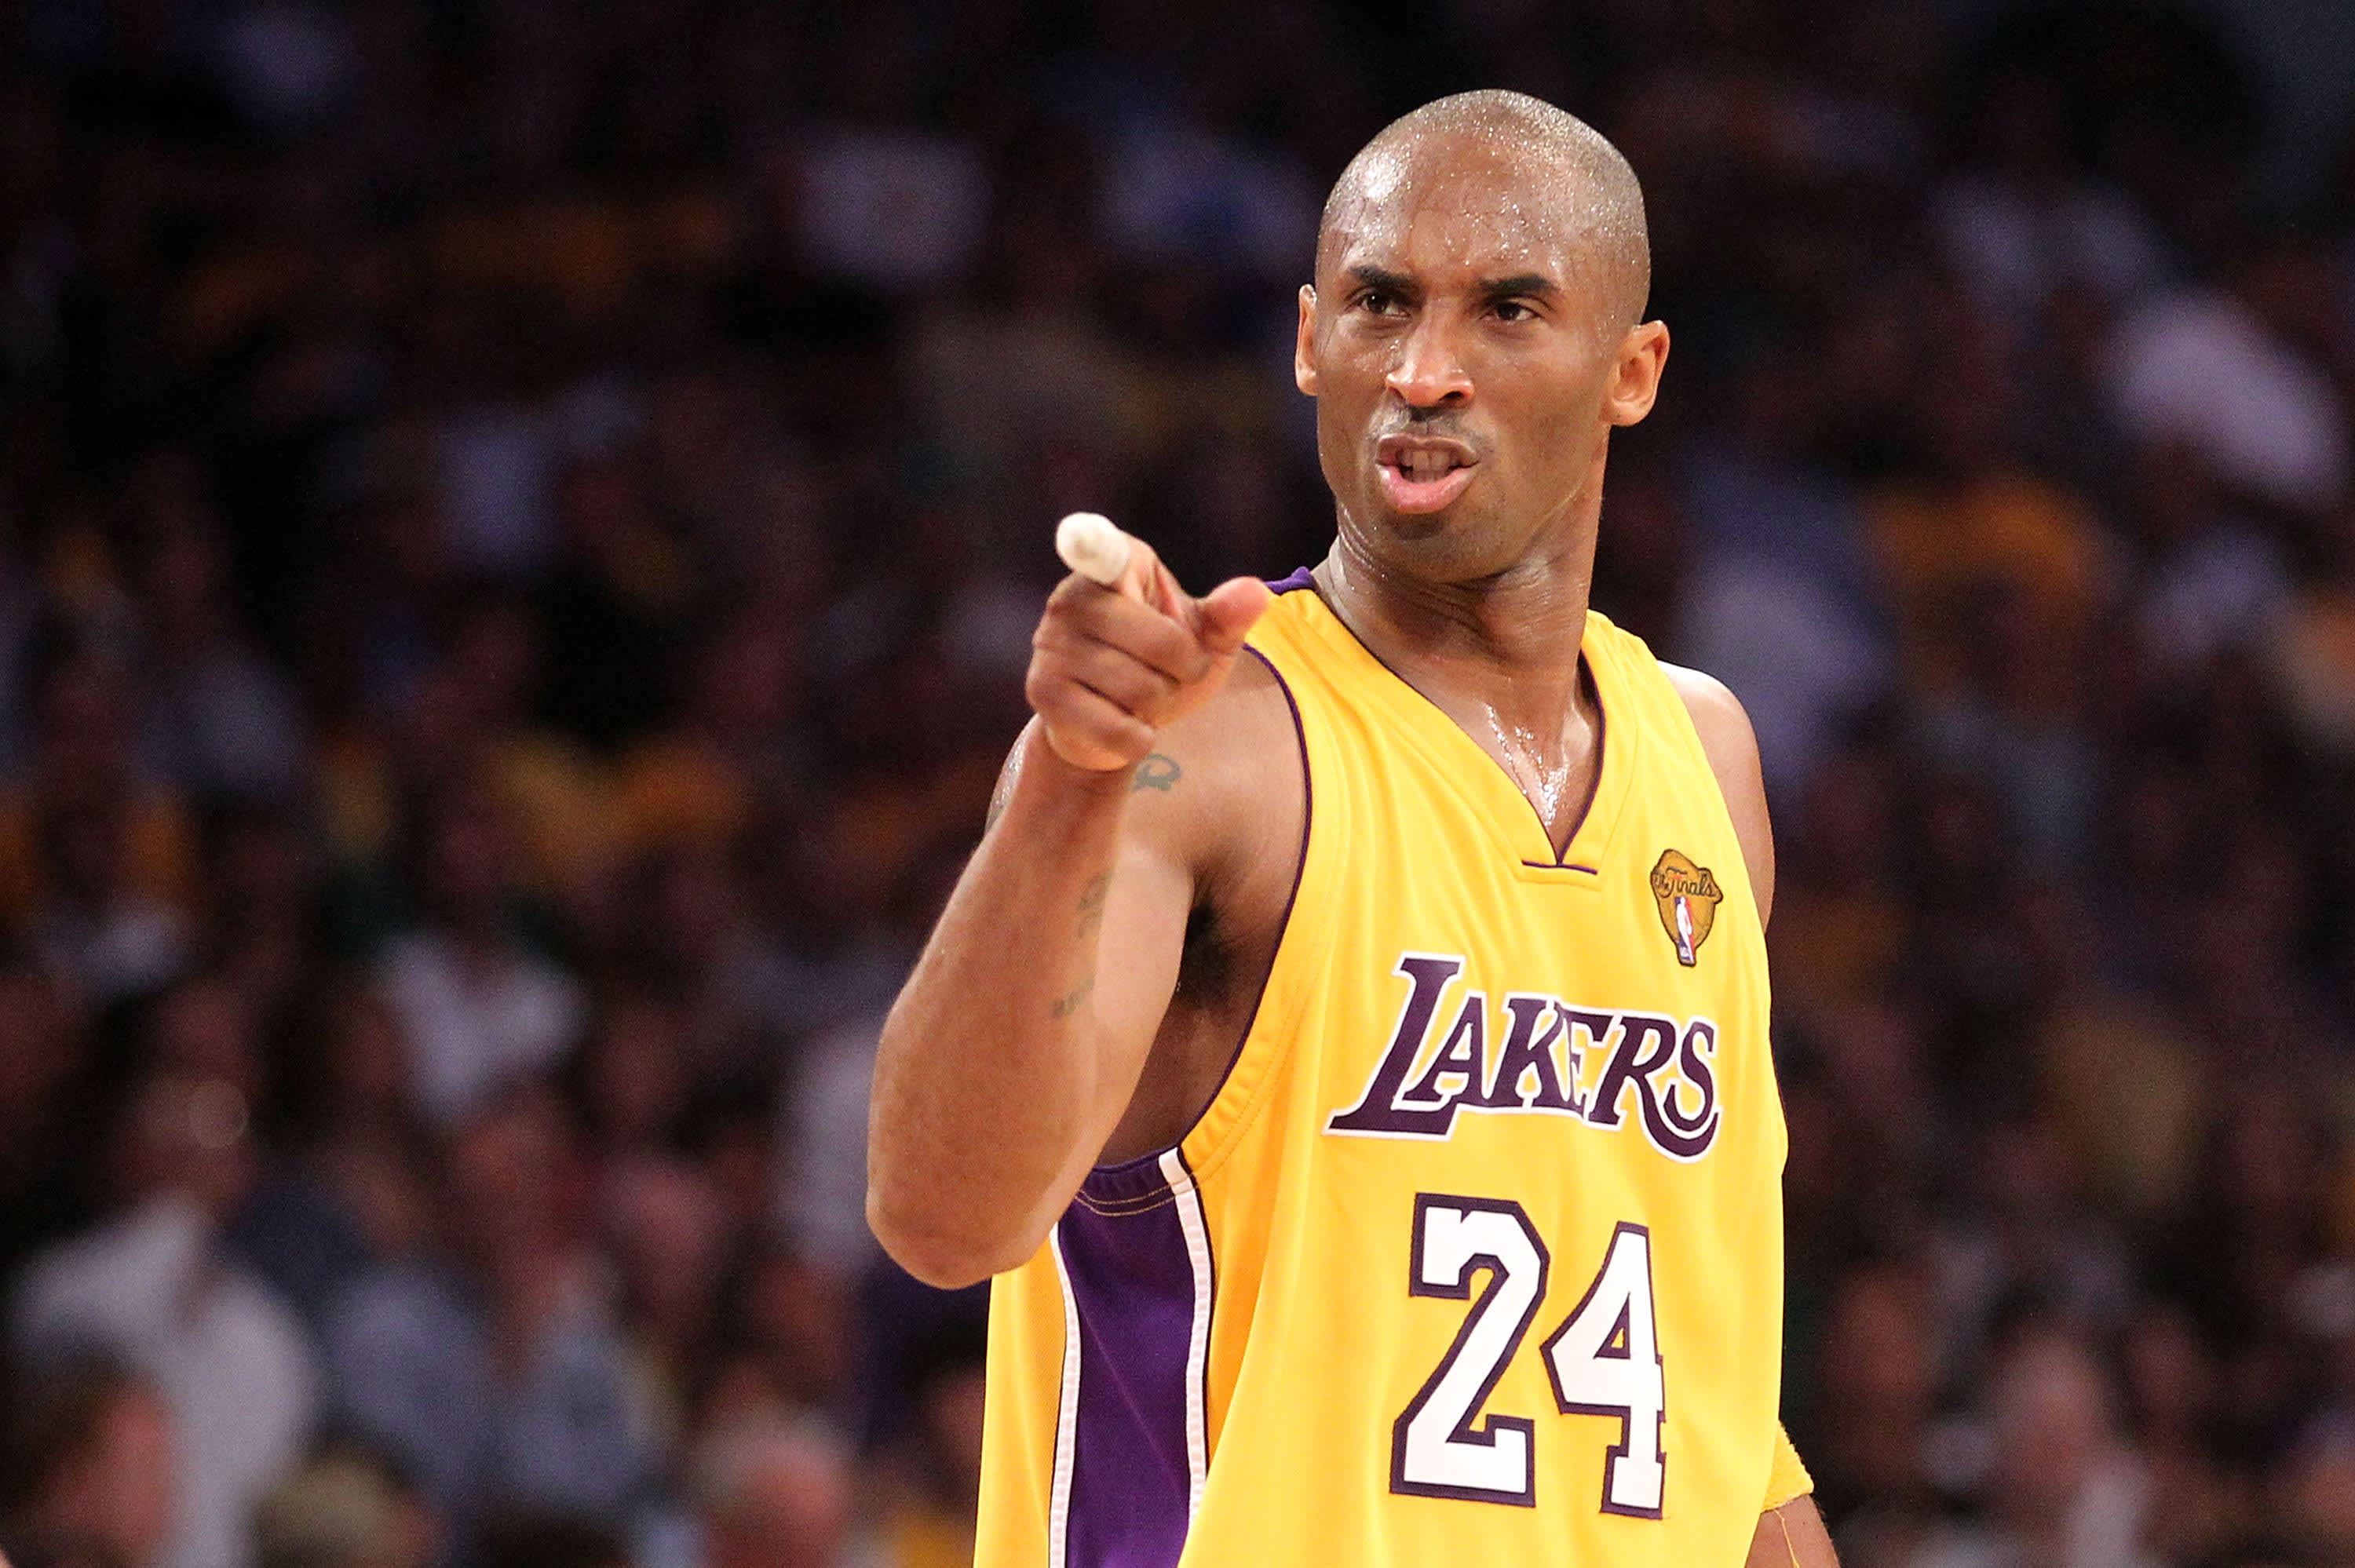 Lakers' trainer says Kobe 'wasn't the most talented guy out there'—here's why he succeeded